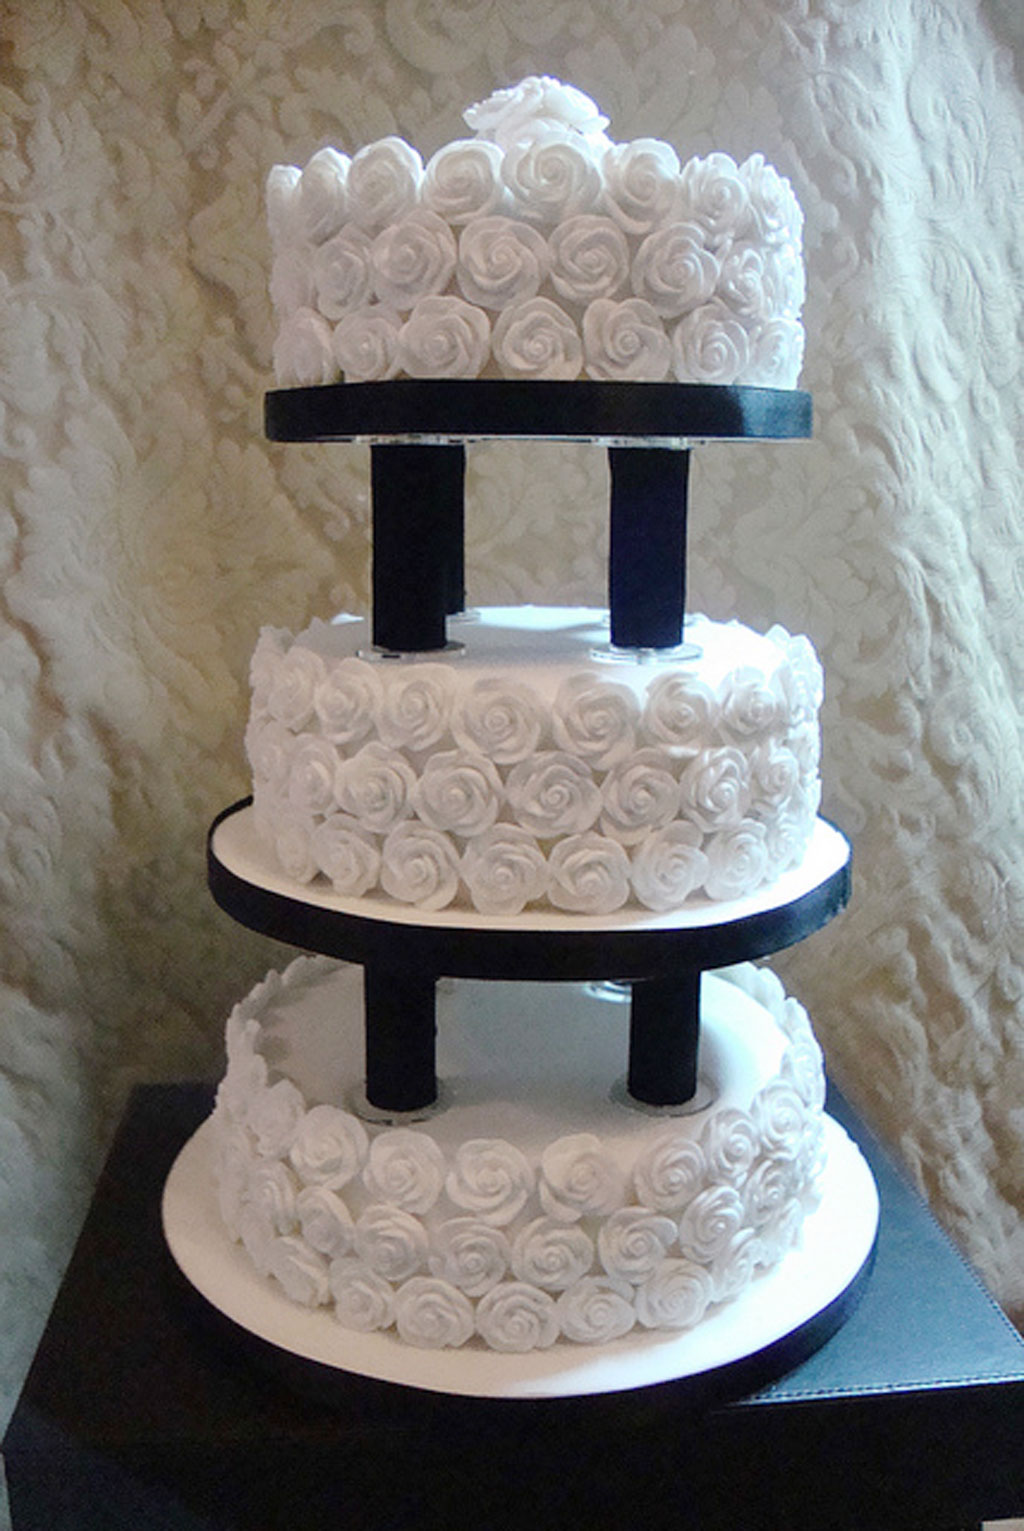 wedding cake plates and pillars wedding cake pillars and plates wedding cake cake ideas 23505